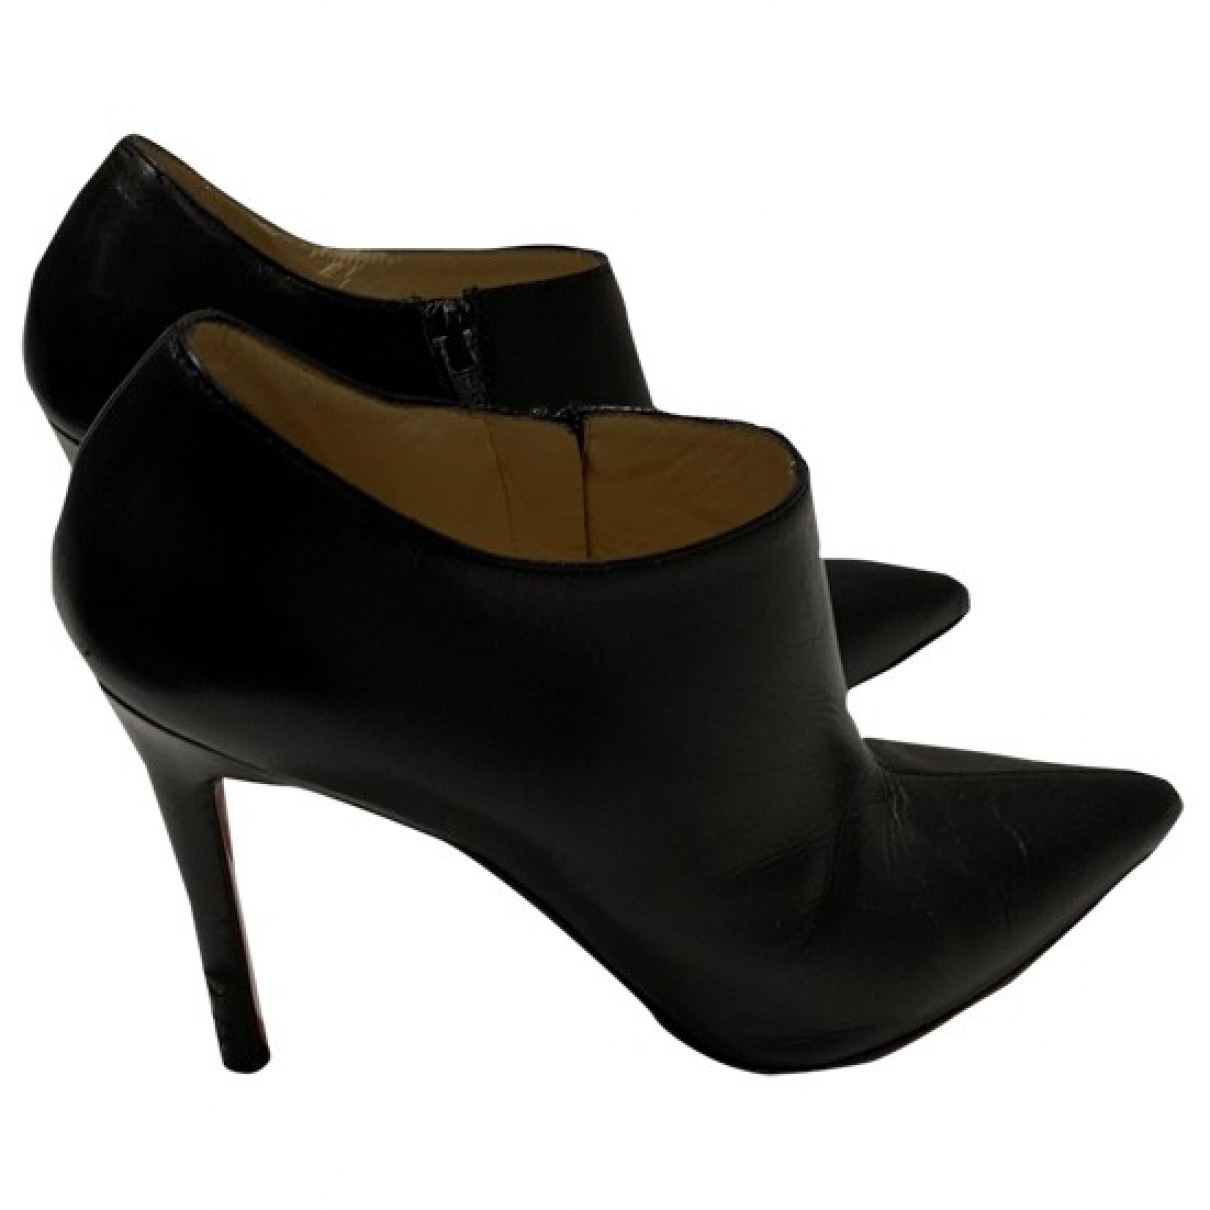 Christian Louboutin \N Black Leather Ankle boots for Women 37 EU